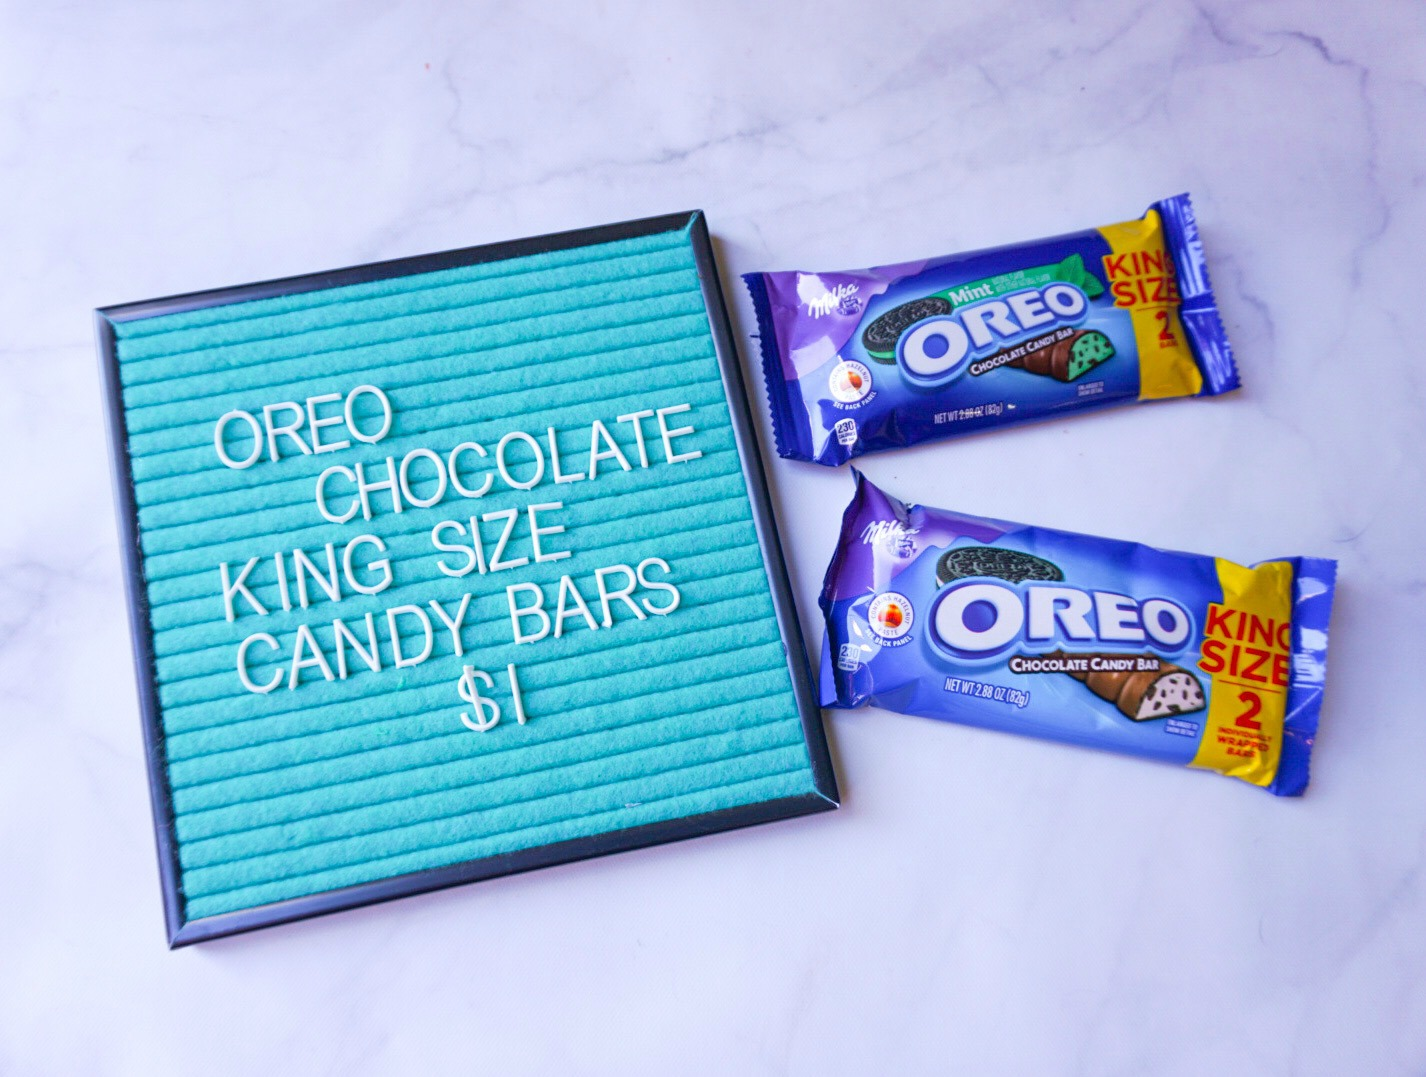 Cool Oreo Chocolate King Size Candy We Already Loved M We Discovered Mint Boys Prefer Original Buti Save Big On Oreo Chocolate King Size Candy Bars At nice food Oreo Chocolate Candy Bar